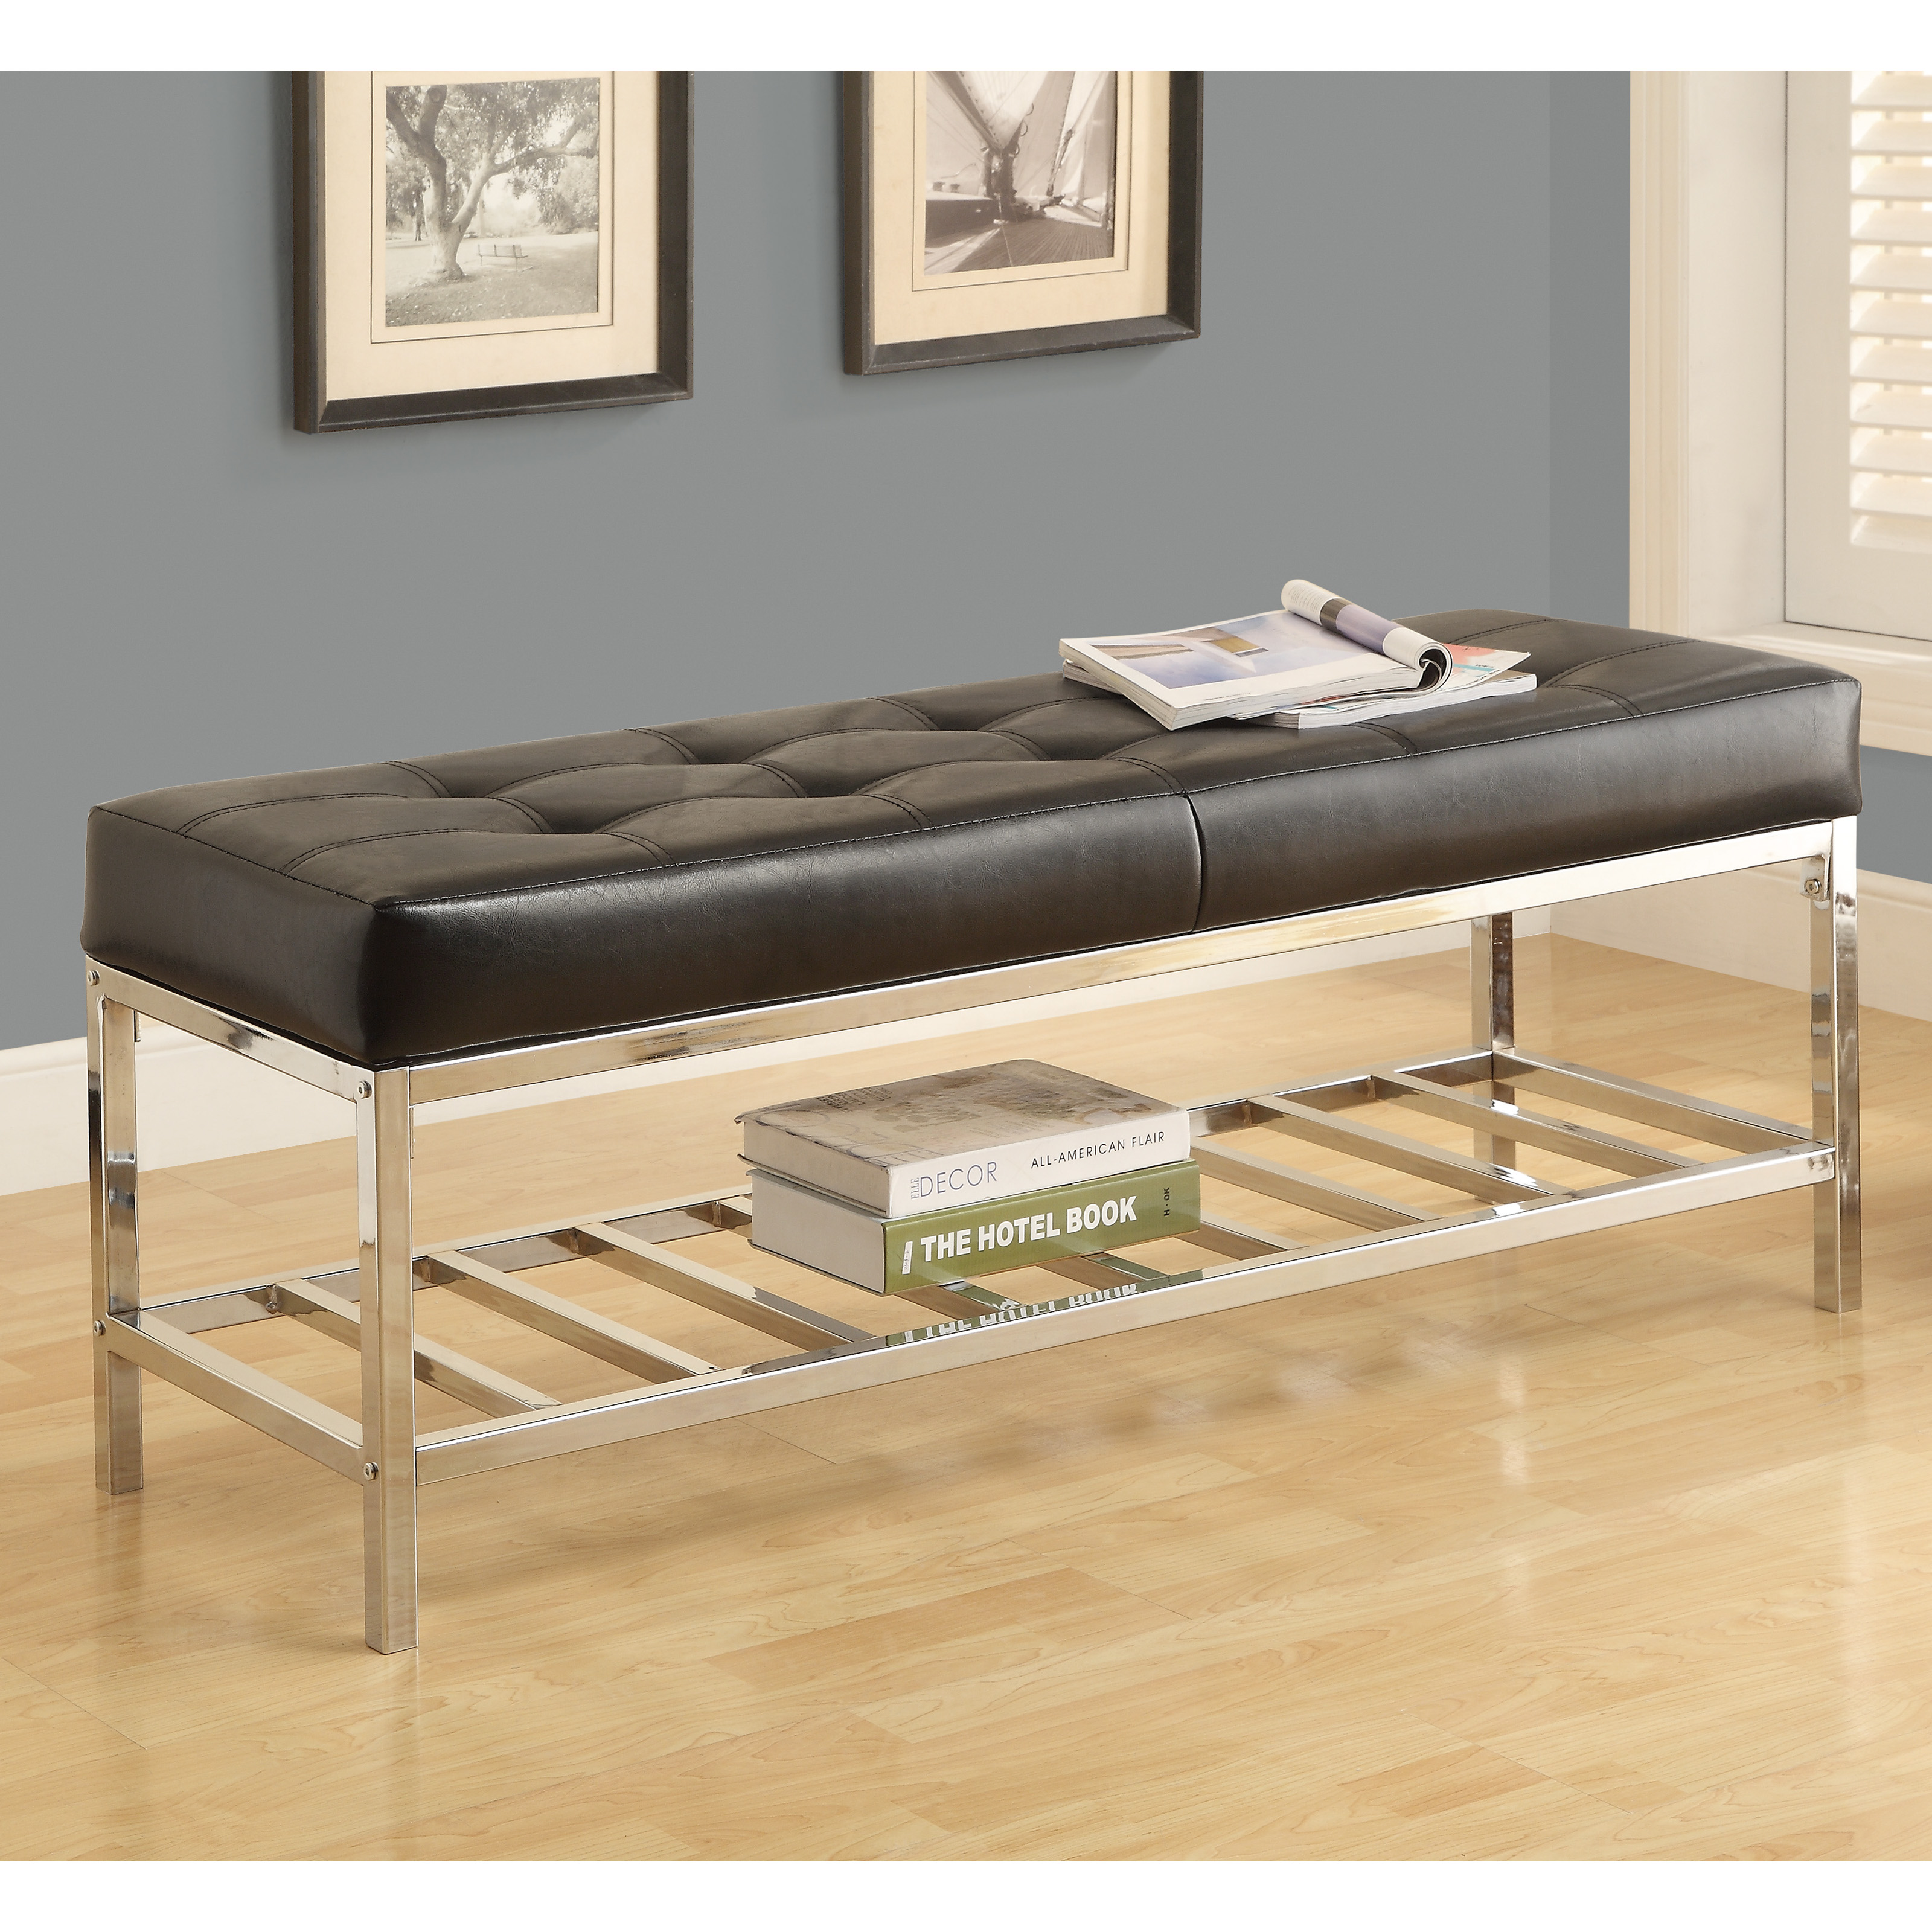 Metal Bench with Leather Cushion   Black   Chrome   Indoor Benches at  Hayneedle. Monarch 48 in  Metal Bench with Leather Cushion   Black   Chrome